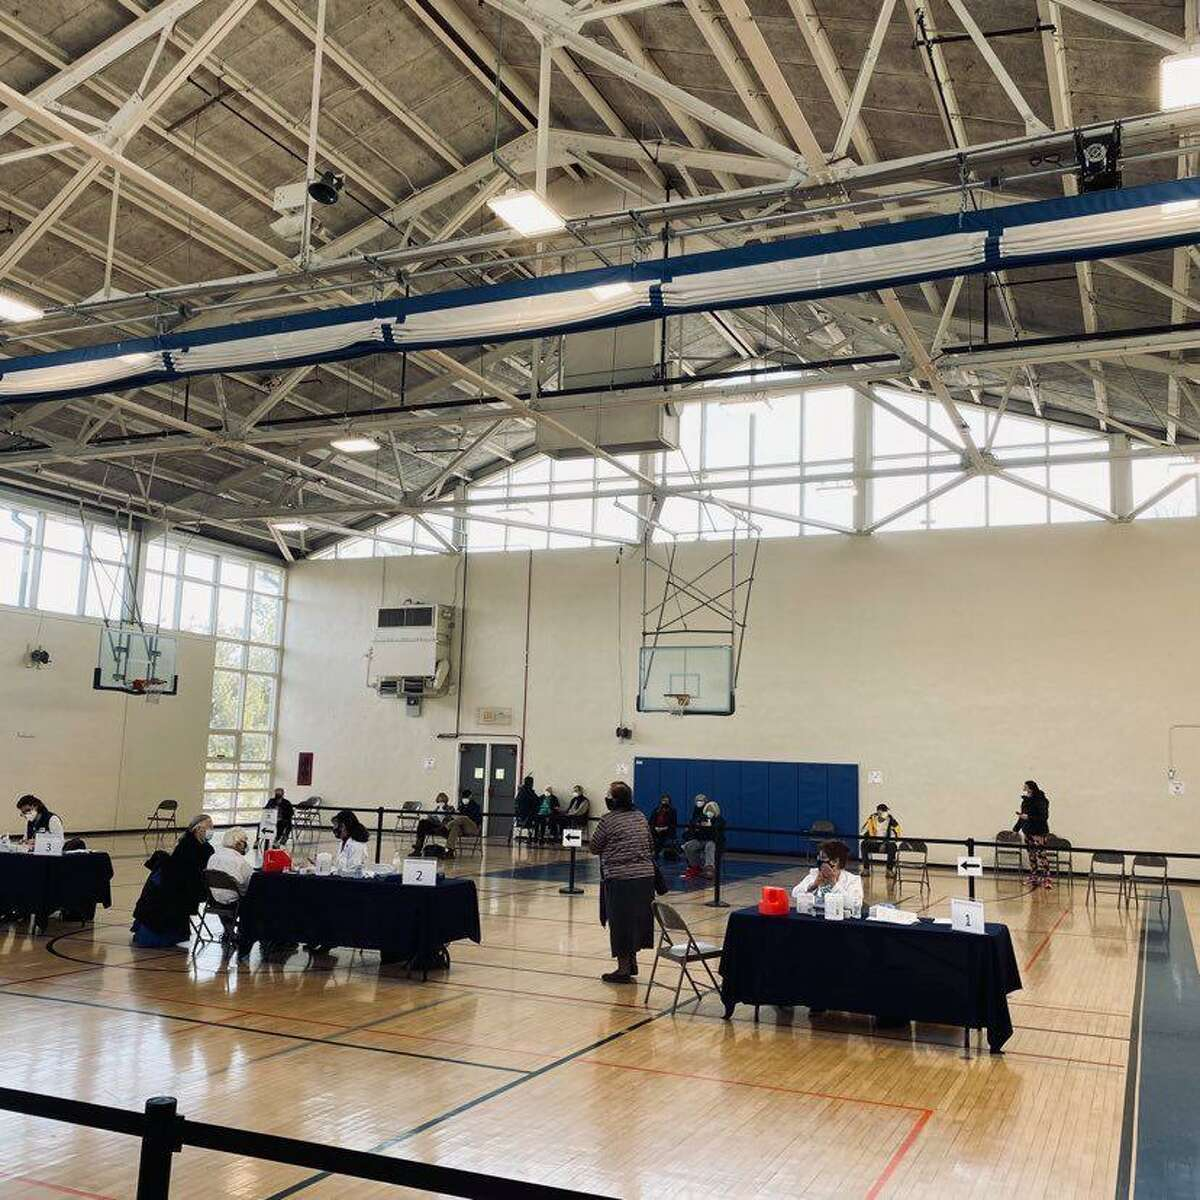 Darien teachers and school employees will begin receiving the vaccine next week at the Mather Community Center gymnasium where the clinic is currently set up.